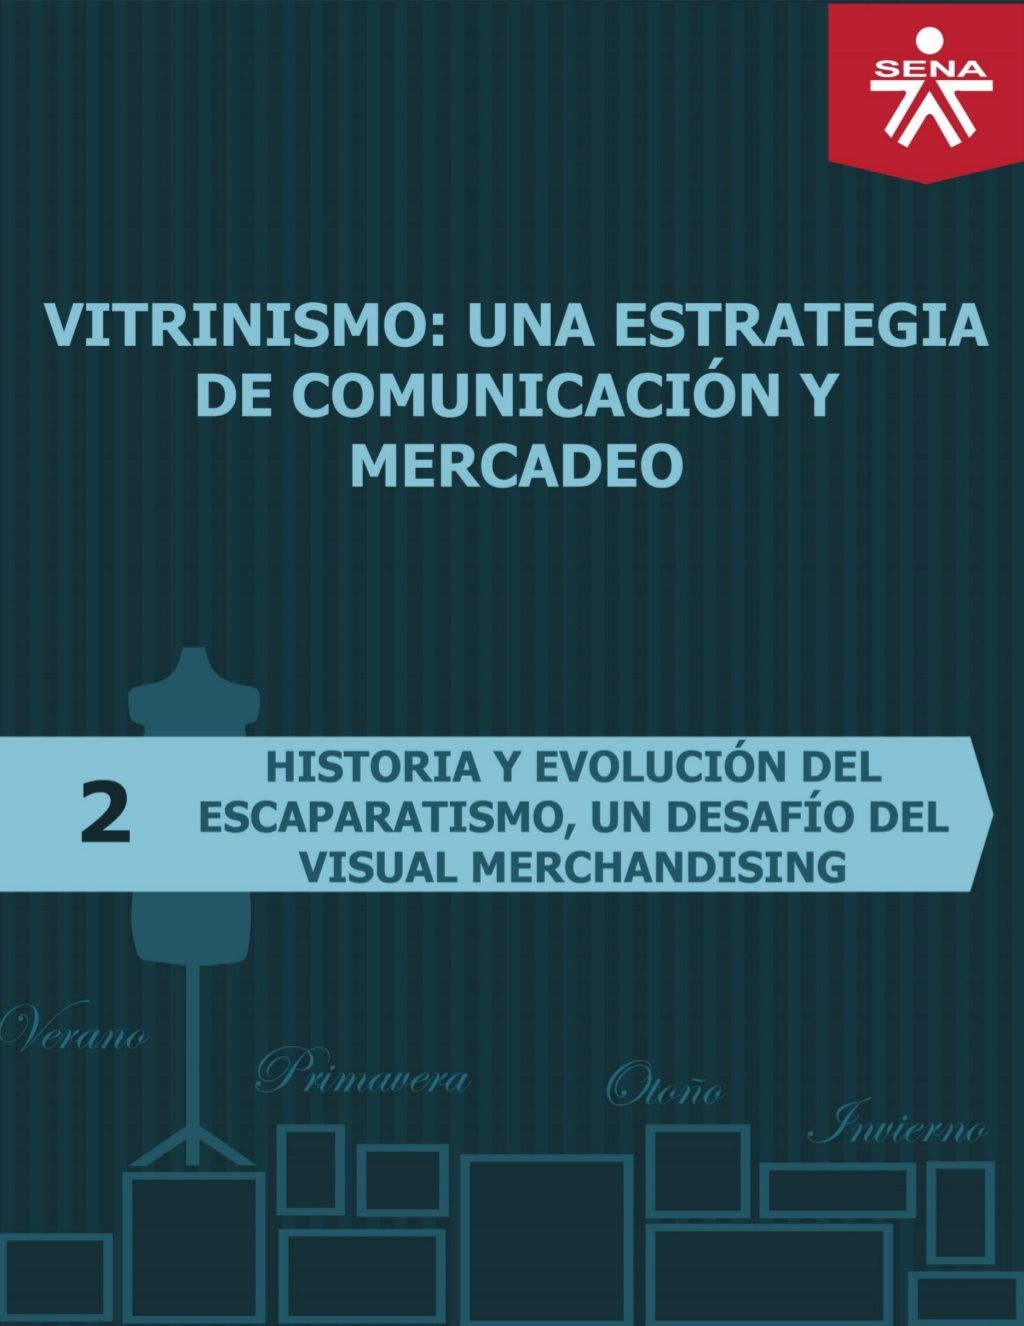 Vitrinismo By Anto Pattern And Designs Company Via Slideshare  # Foda Muebles De Madera